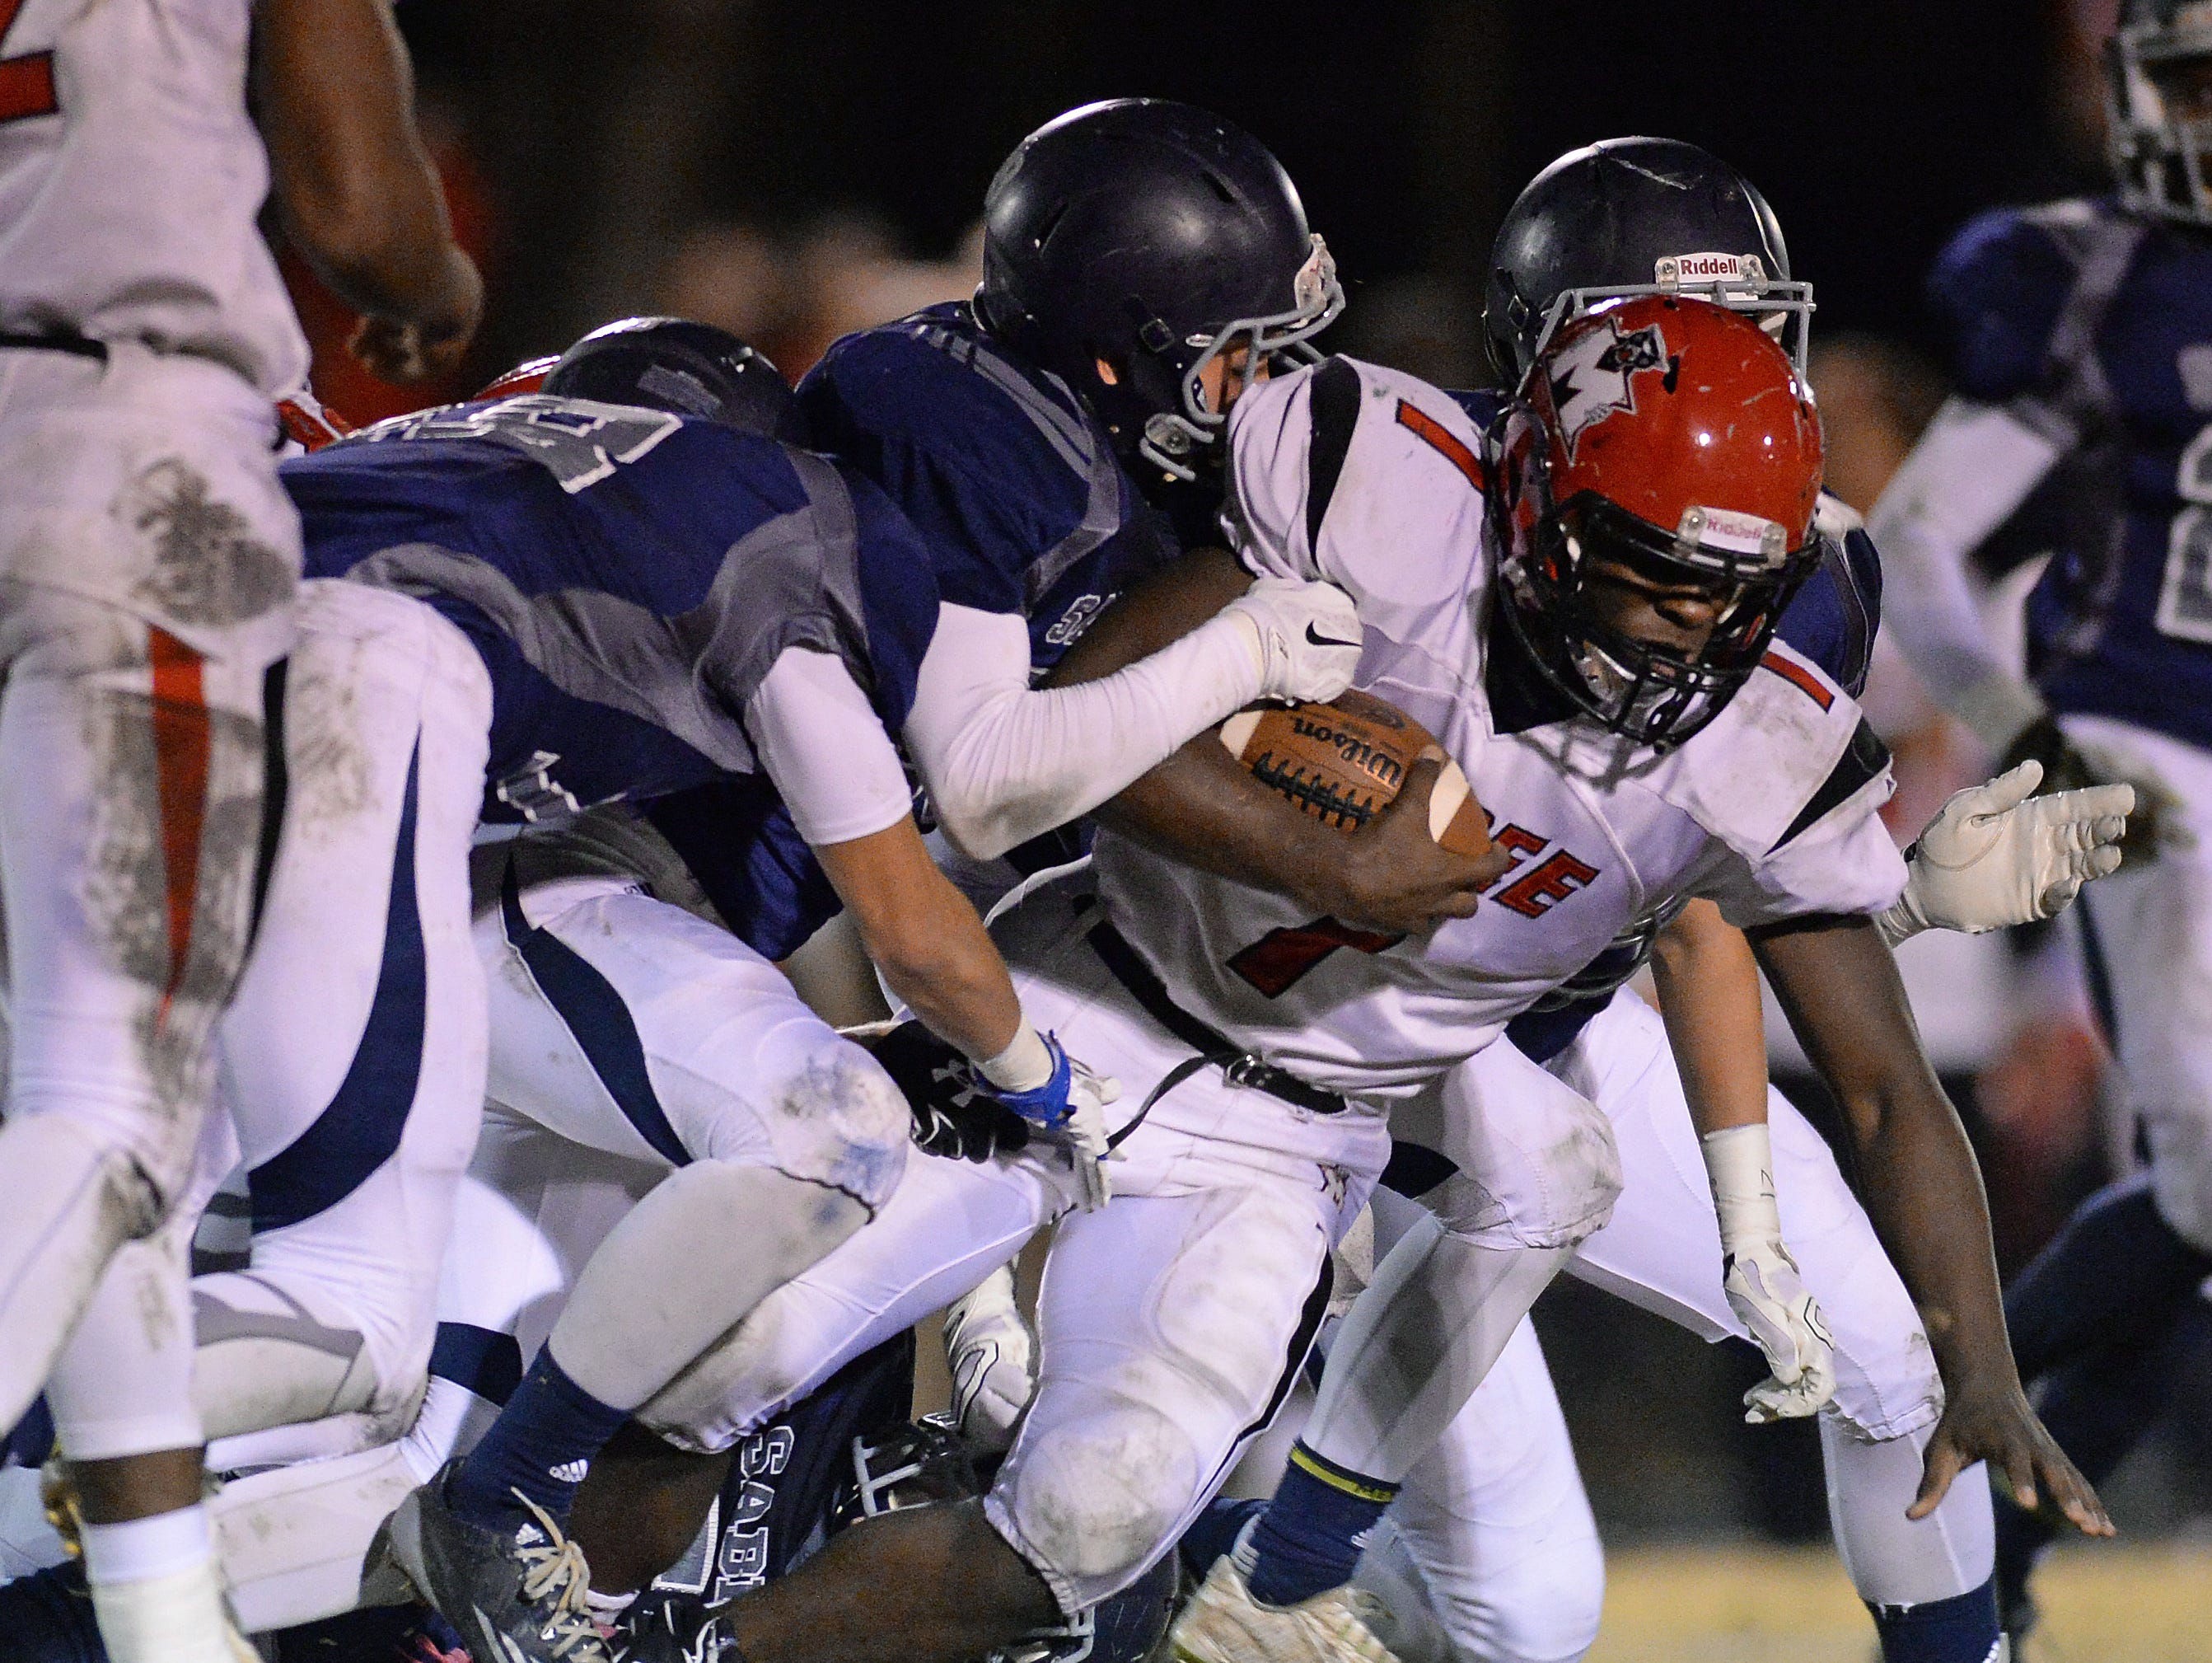 McBee's Dashonnell Wright (7) is brought down by the Southside Christian defense during the Class A Division I playoffs Friday, November 27, 2015.